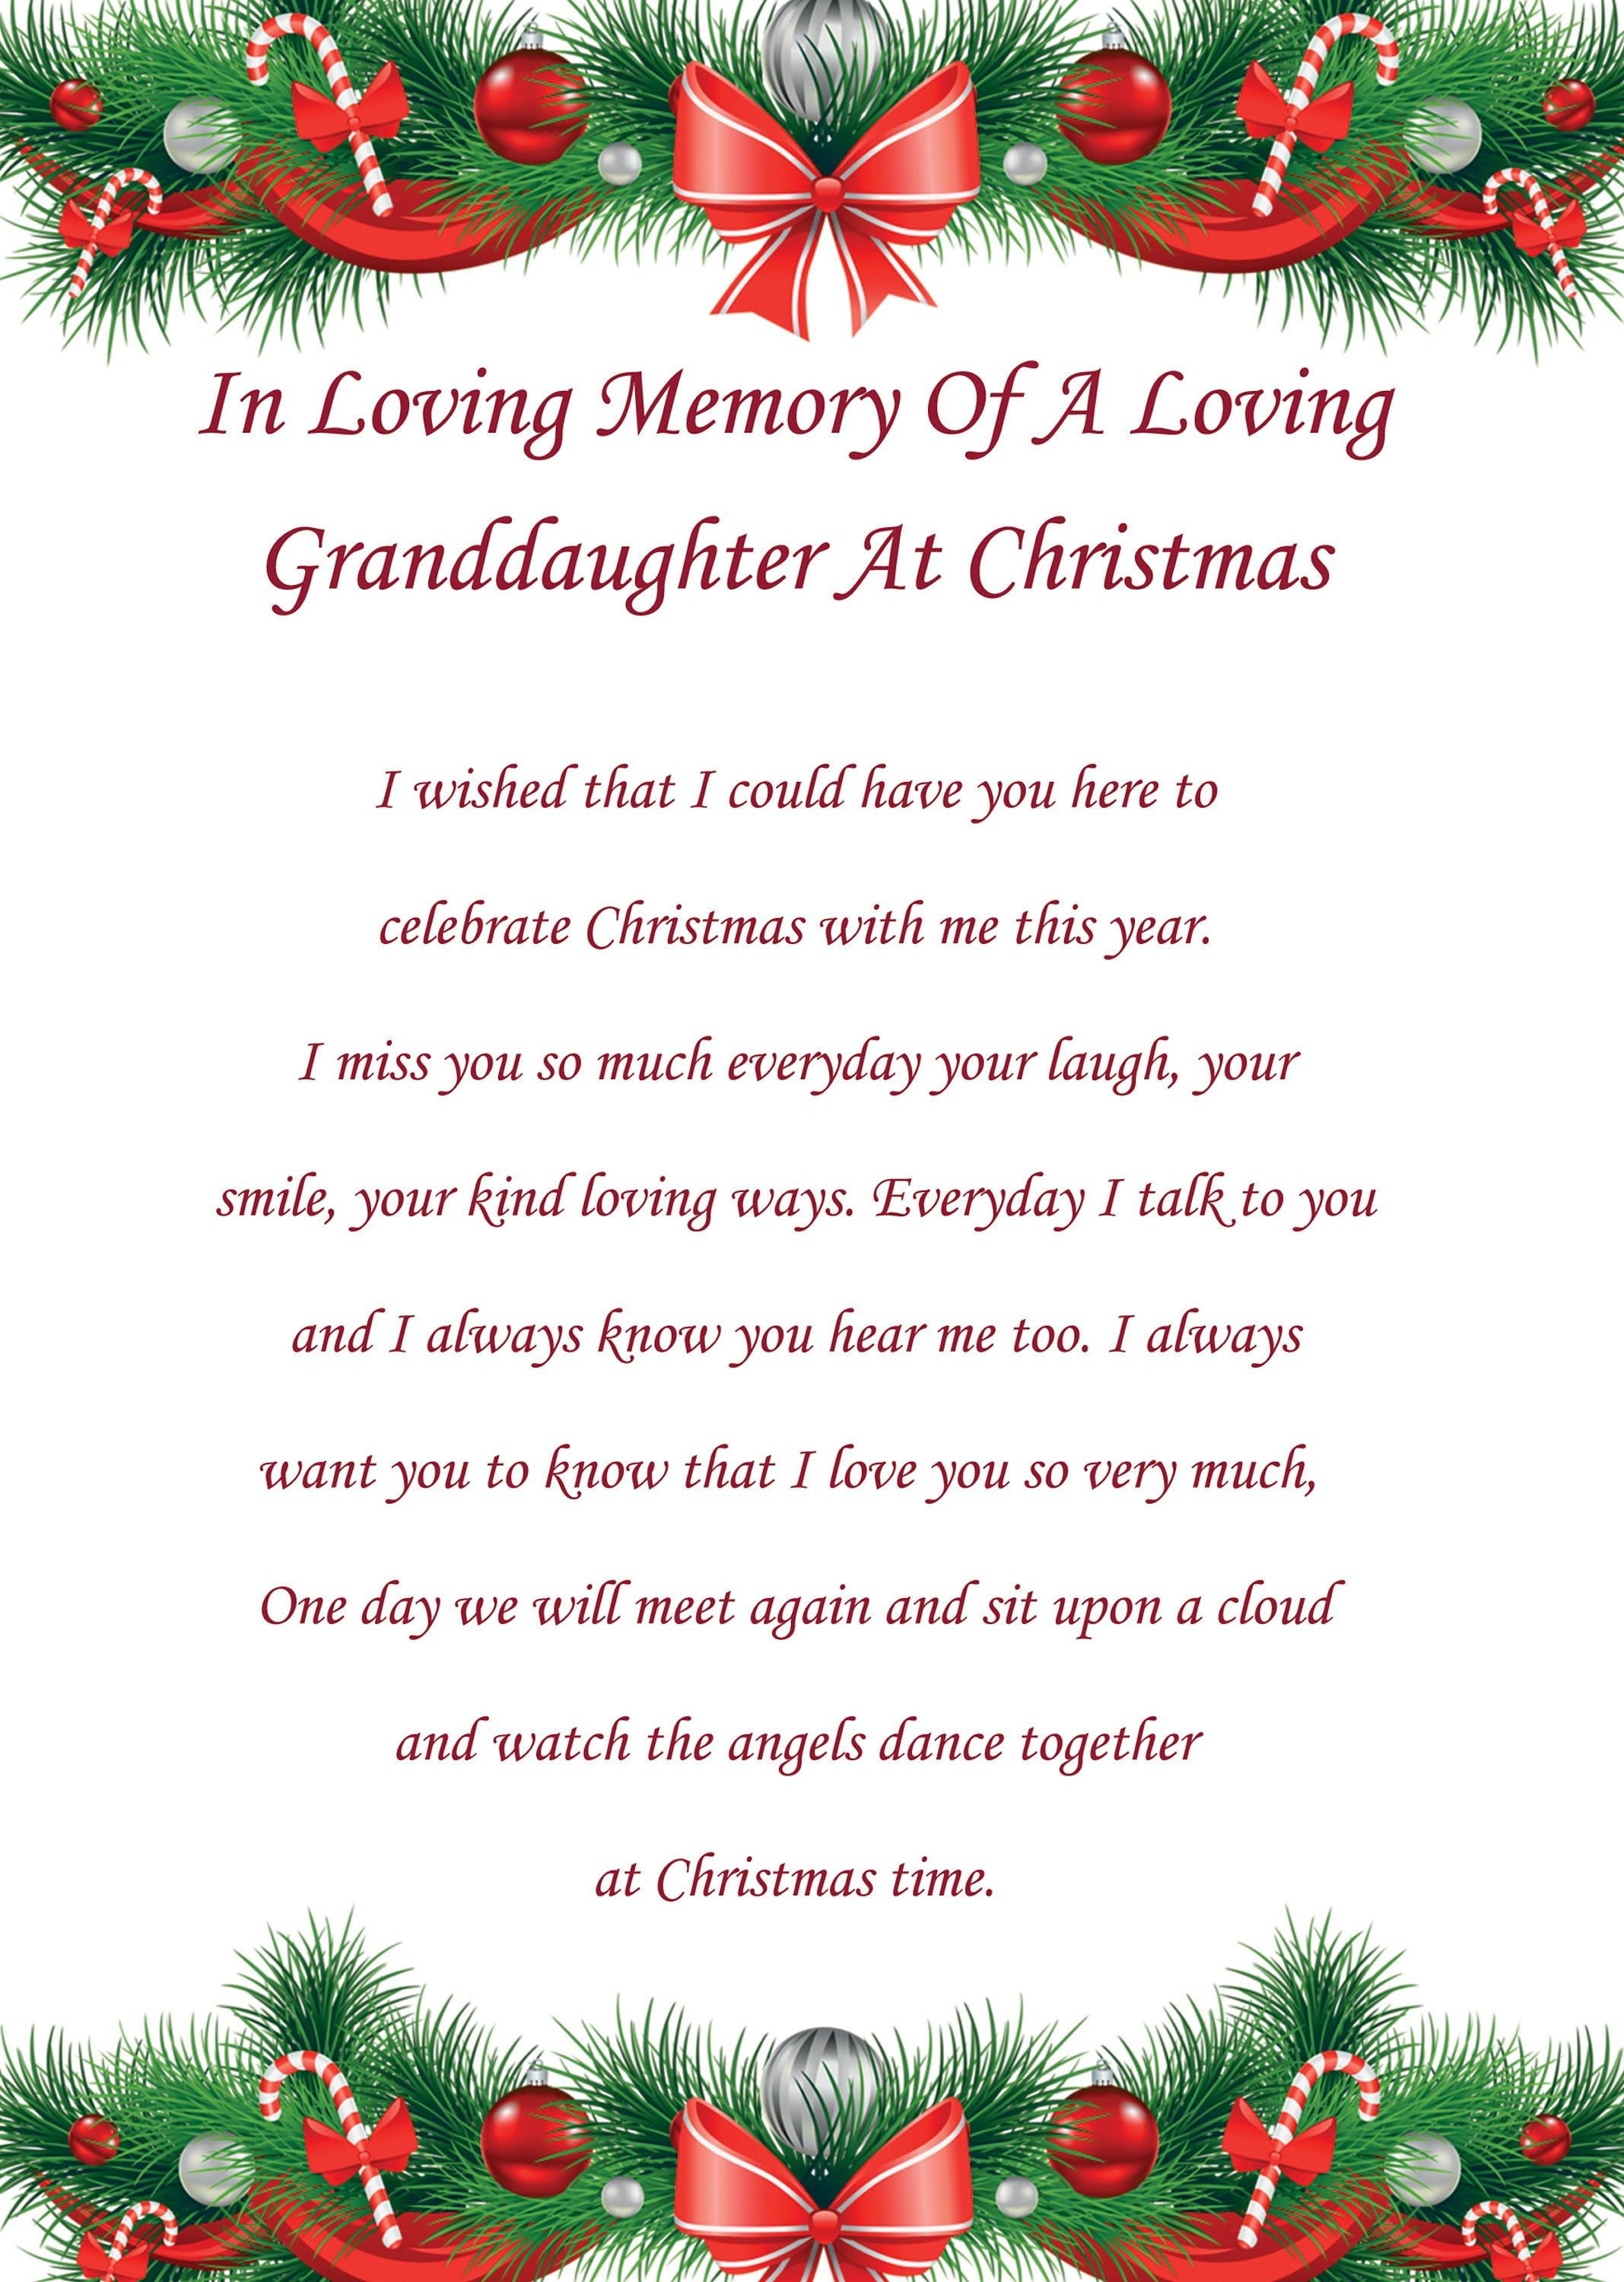 Granddaughter In Memory Christmas Card | Etsy